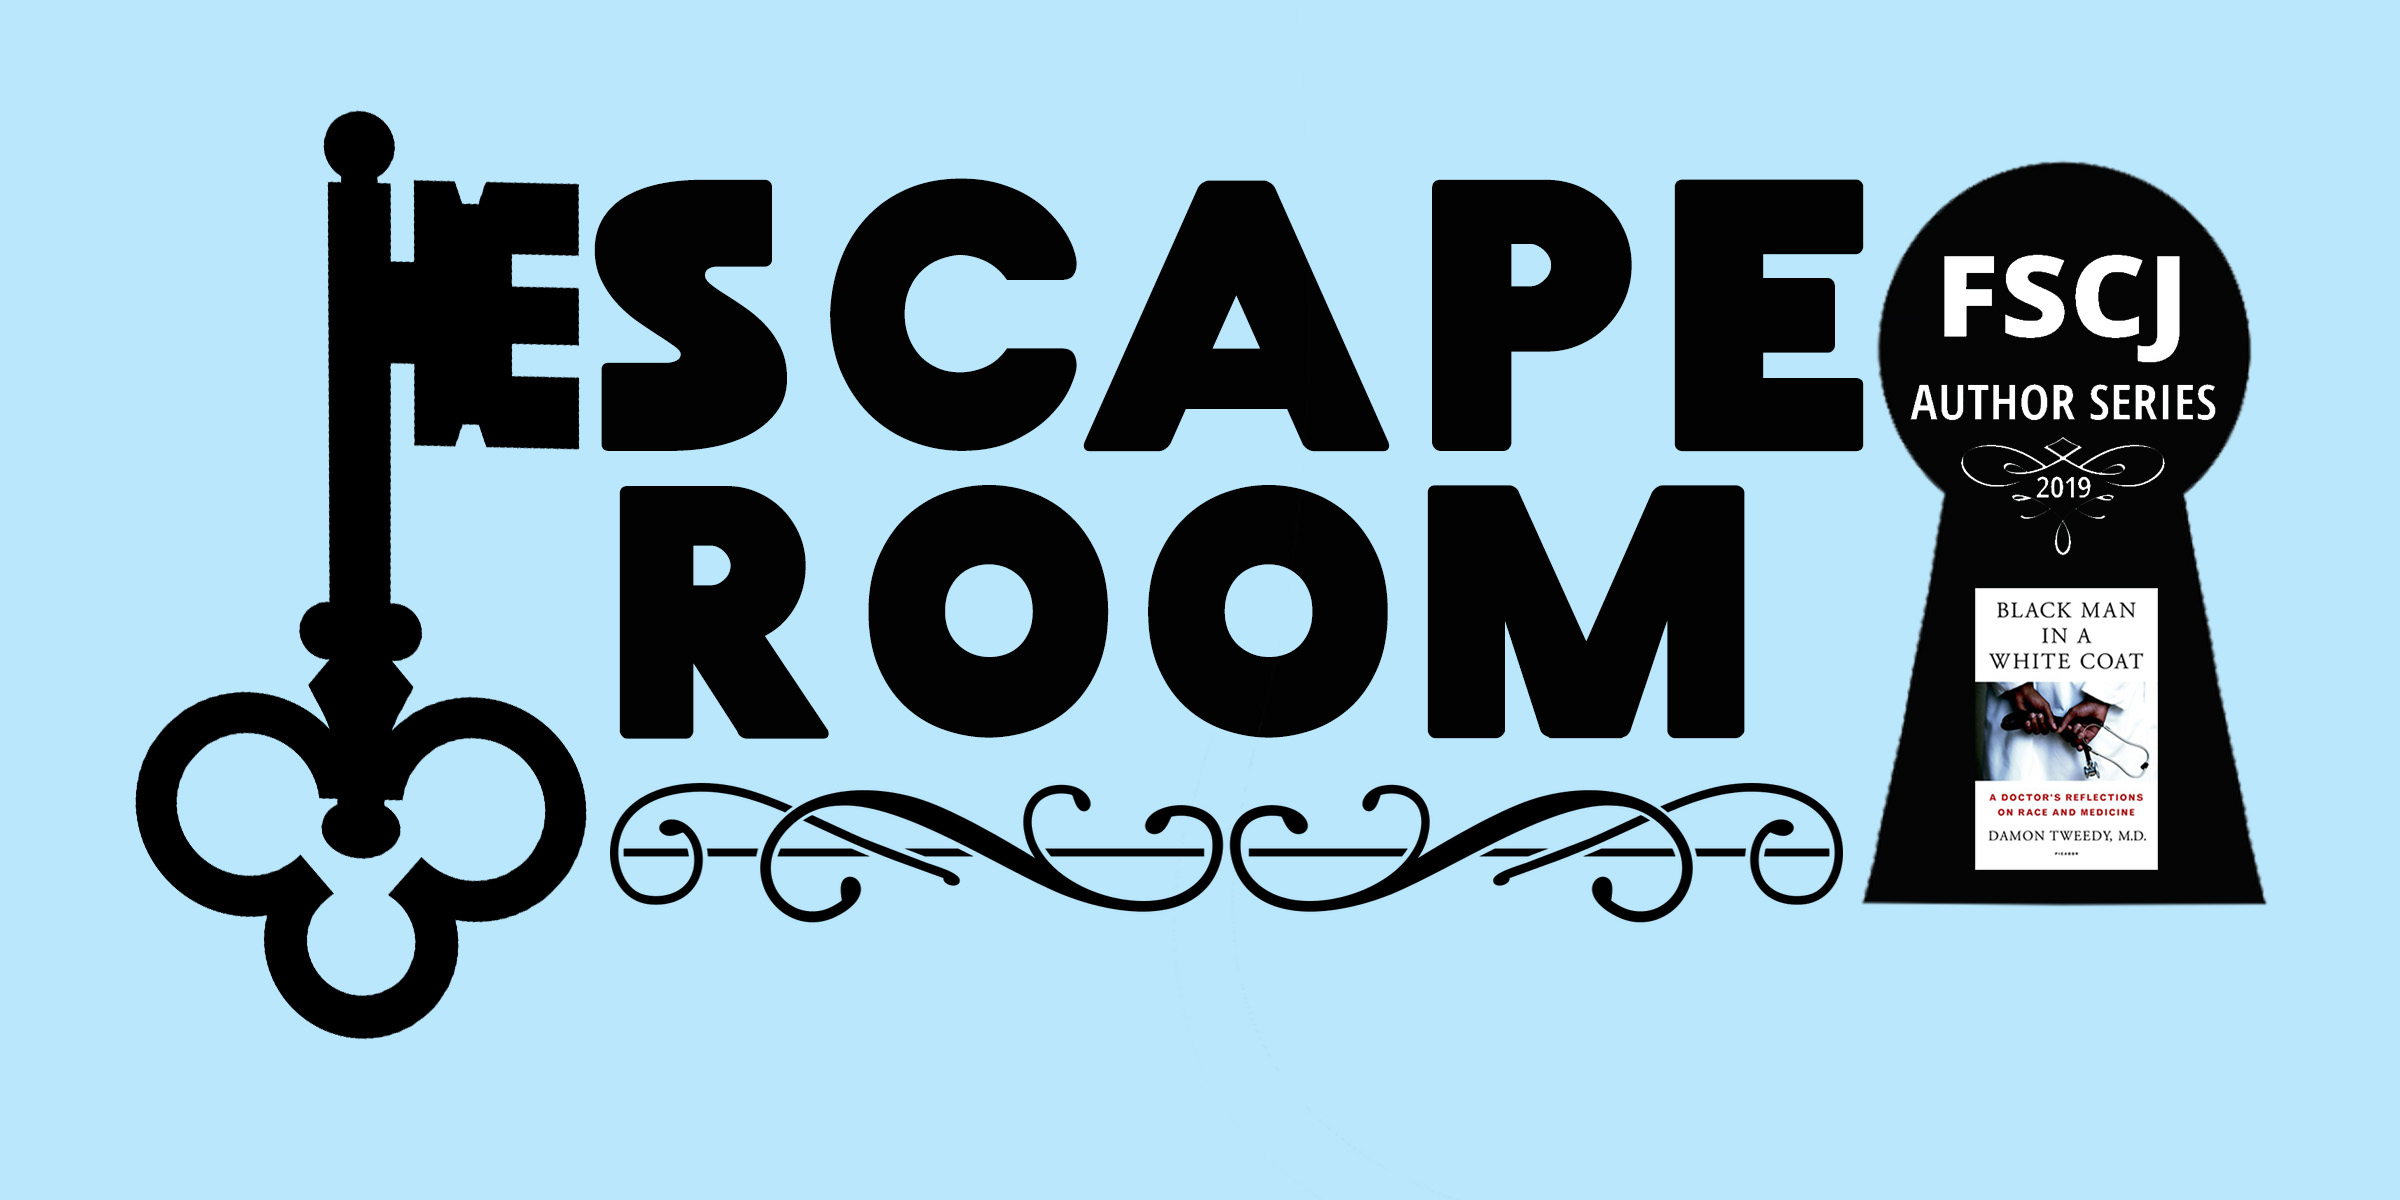 Nassau - Author Series Escape Room